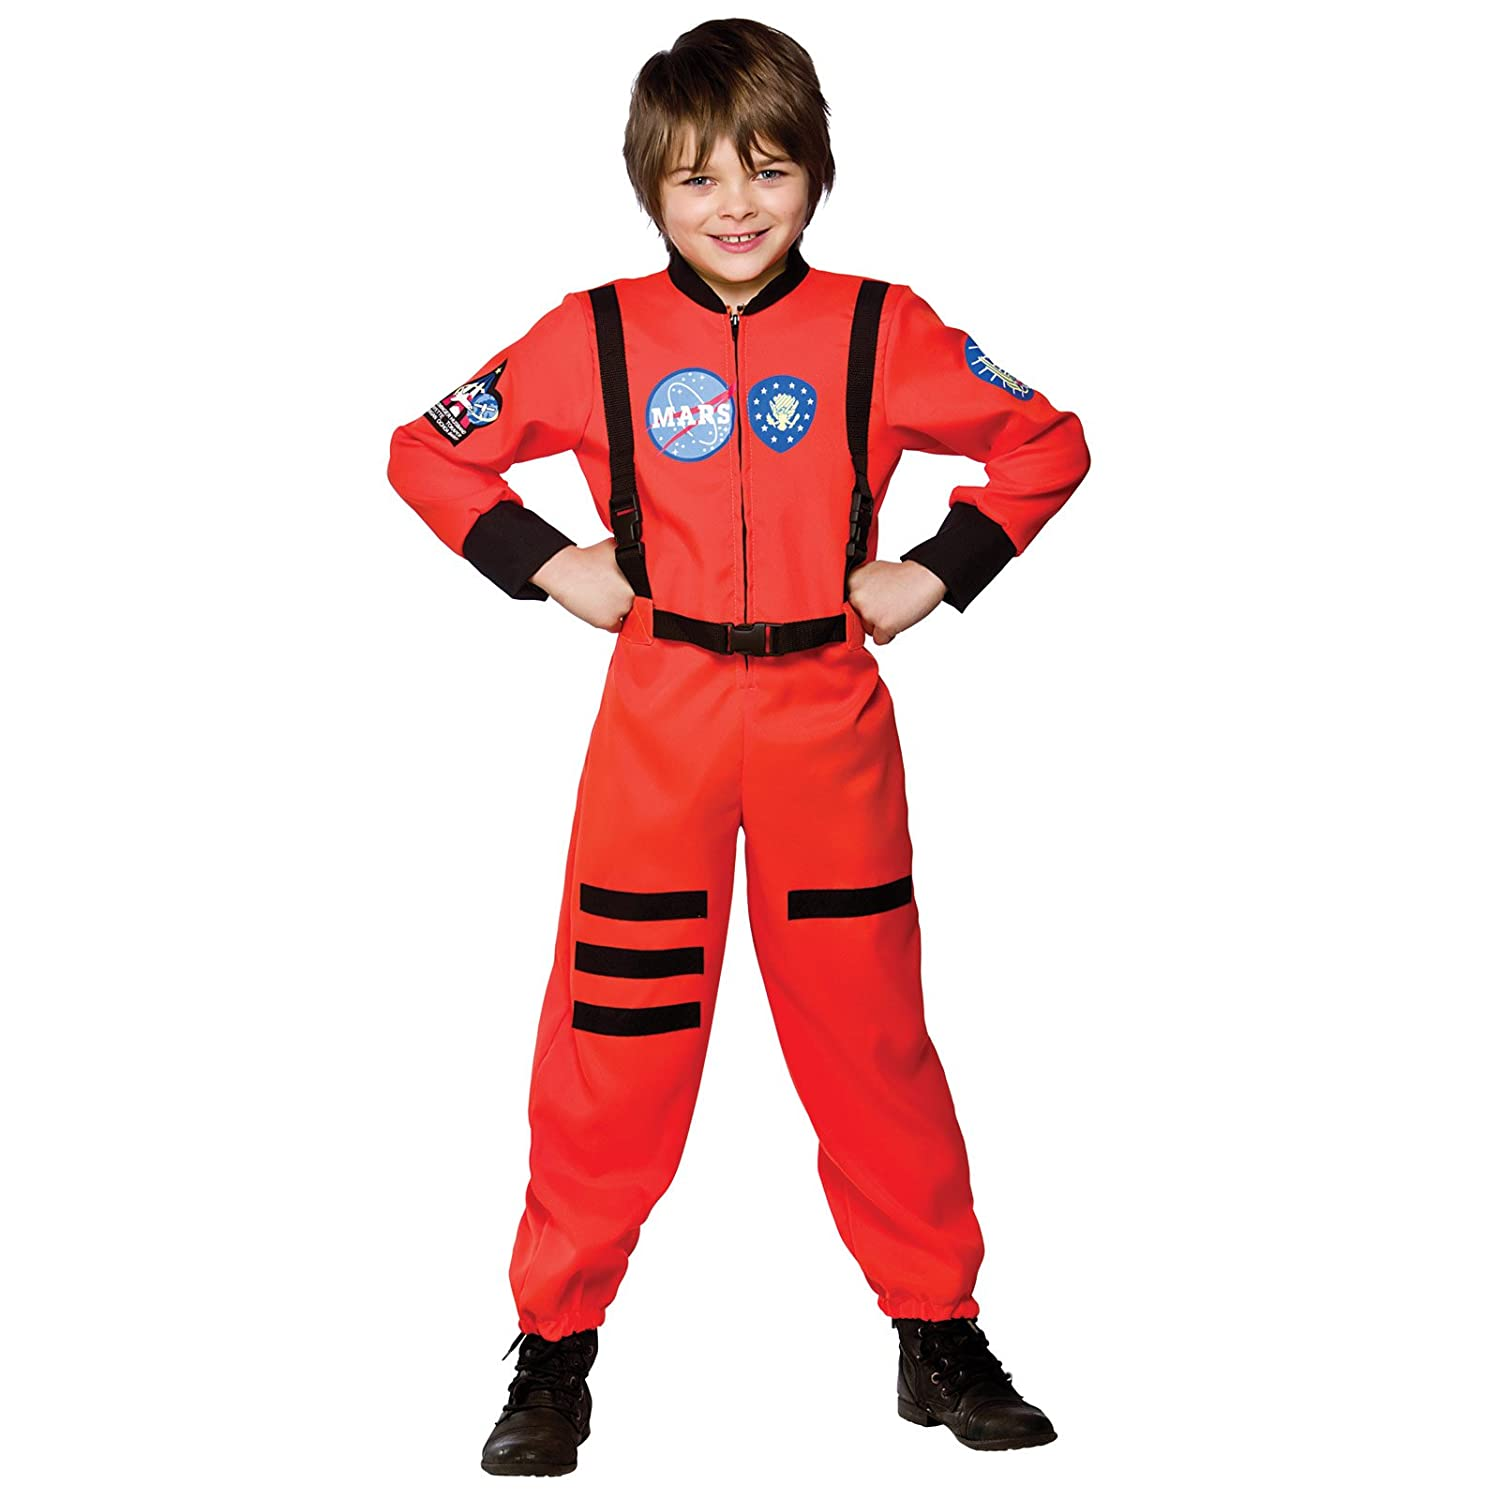 0ffbd4d72c85 Mission To Mars Astronaut - Kids Costume 5 - 7 years  Amazon.co.uk  Toys    Games